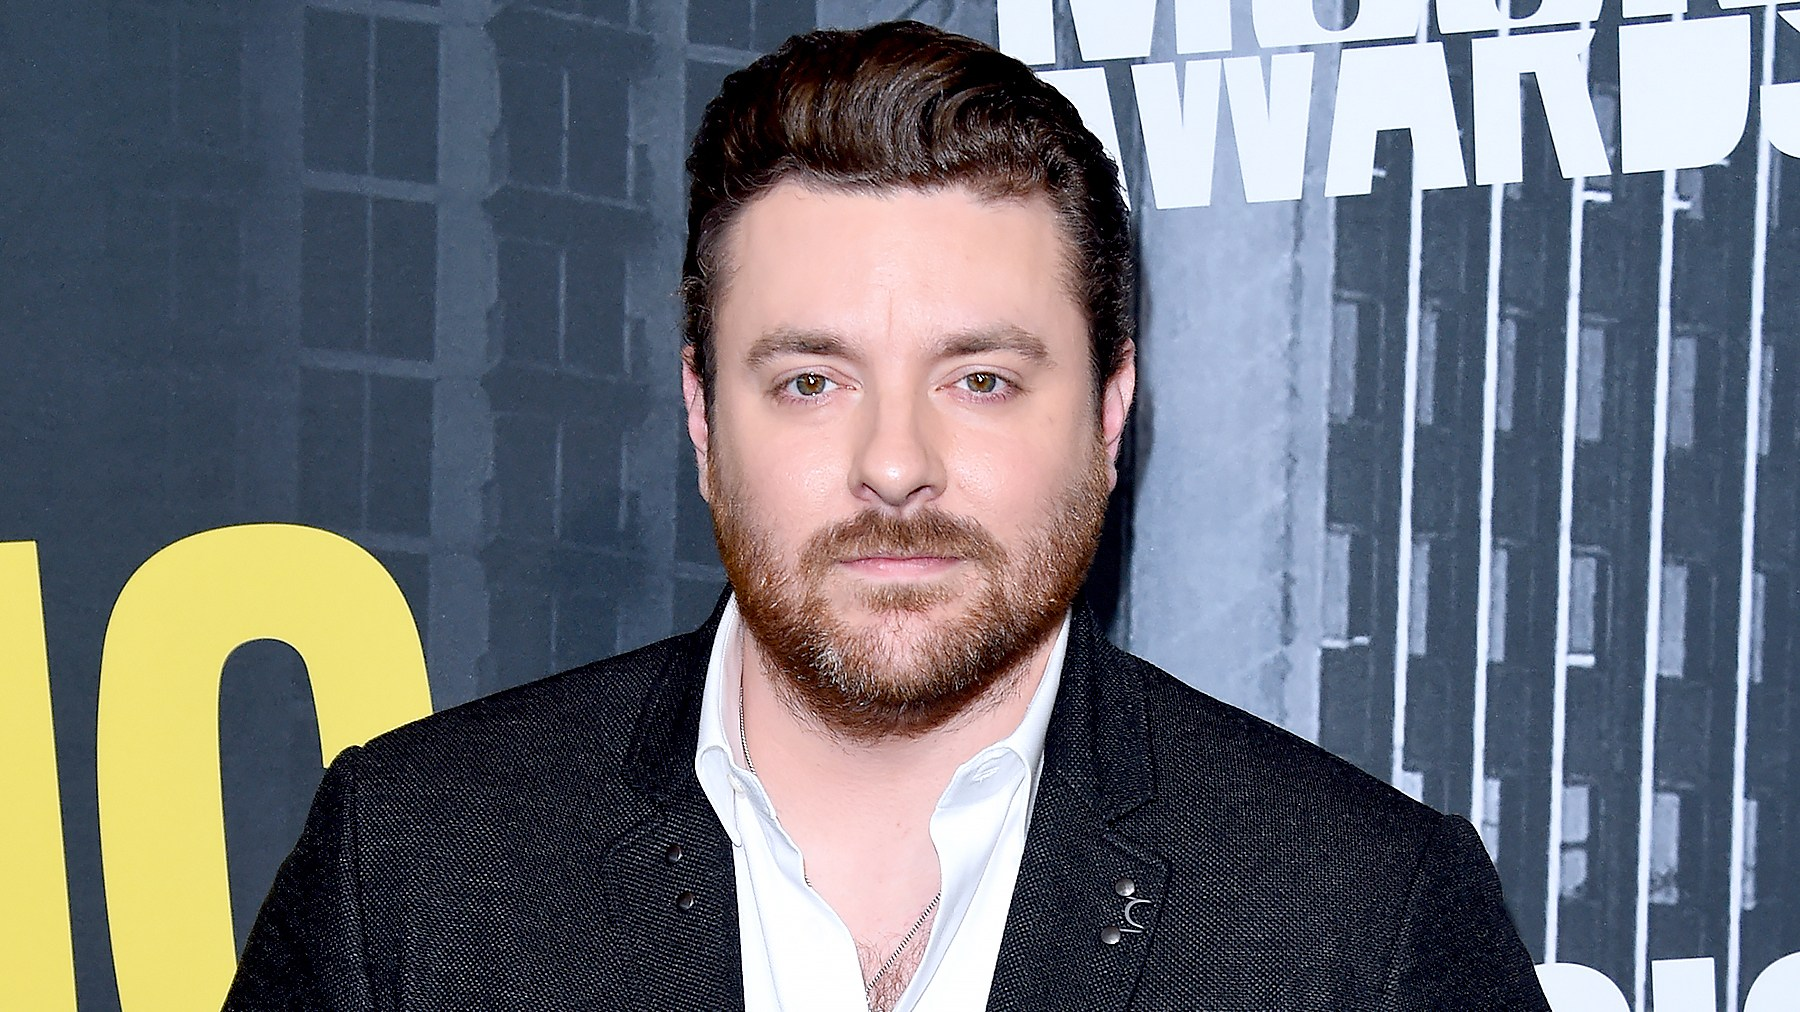 Chris Young attends the 2017 CMT Music Awards at the Music City Center on June 7, 2017 in Nashville, Tennessee.